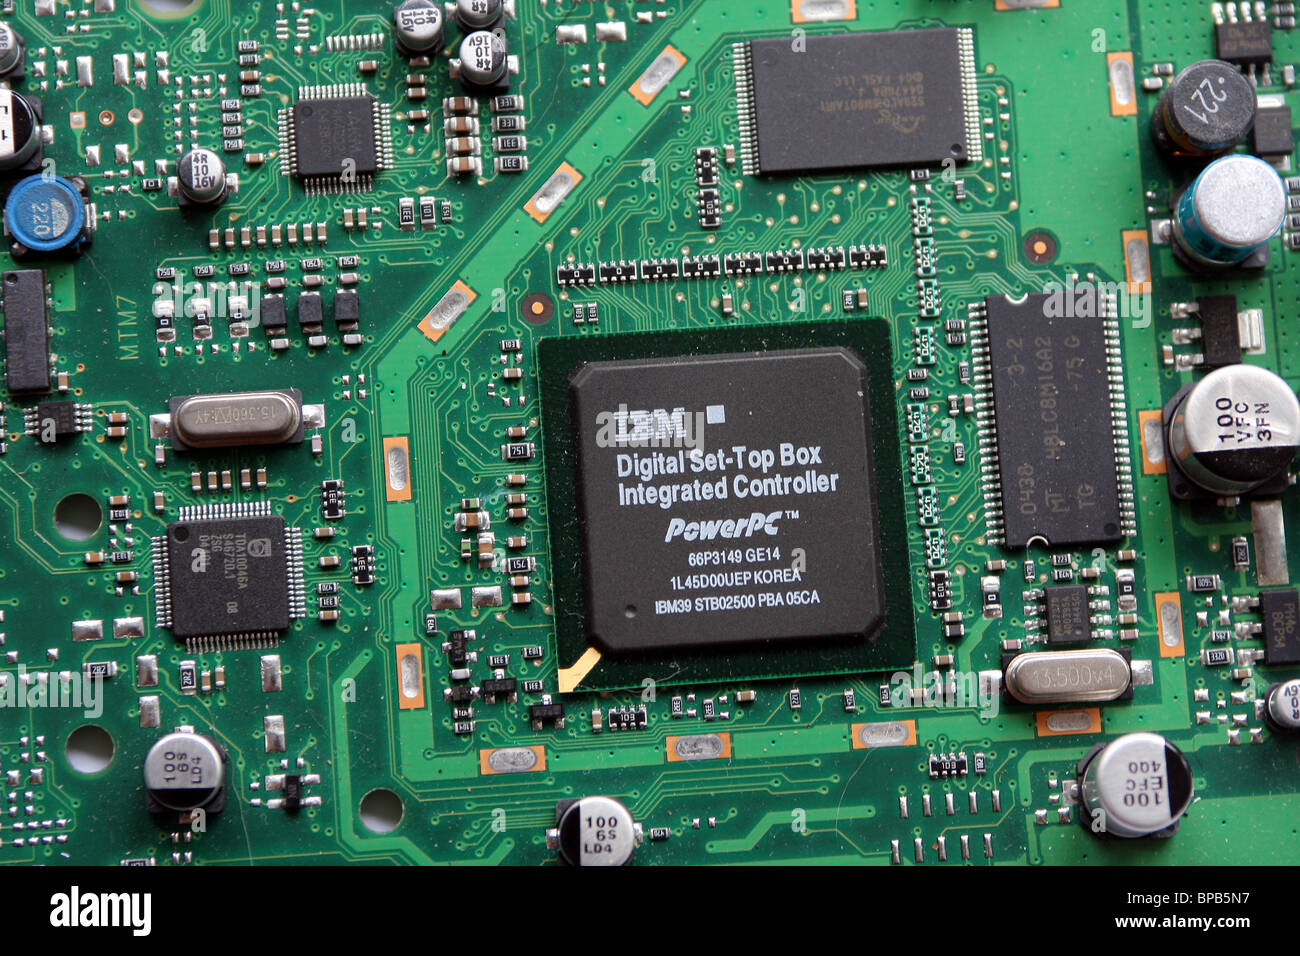 Printed Circuit Board of a DVB digital Television receiver box made ...